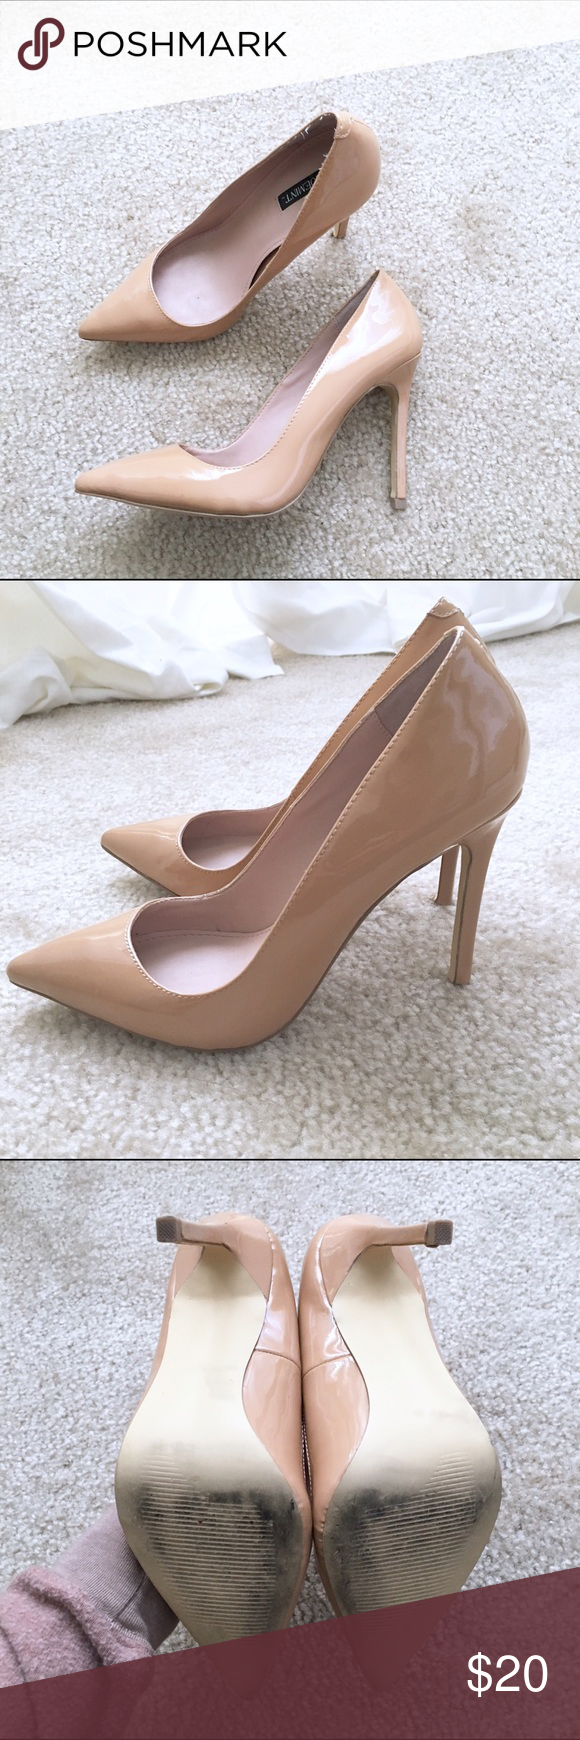 Shoemint nude patent heels Size 6.5 (runs small, fits 6). Worn about 5 times. In great condition. Patent leather. From shoemint Shoemint Shoes Heels